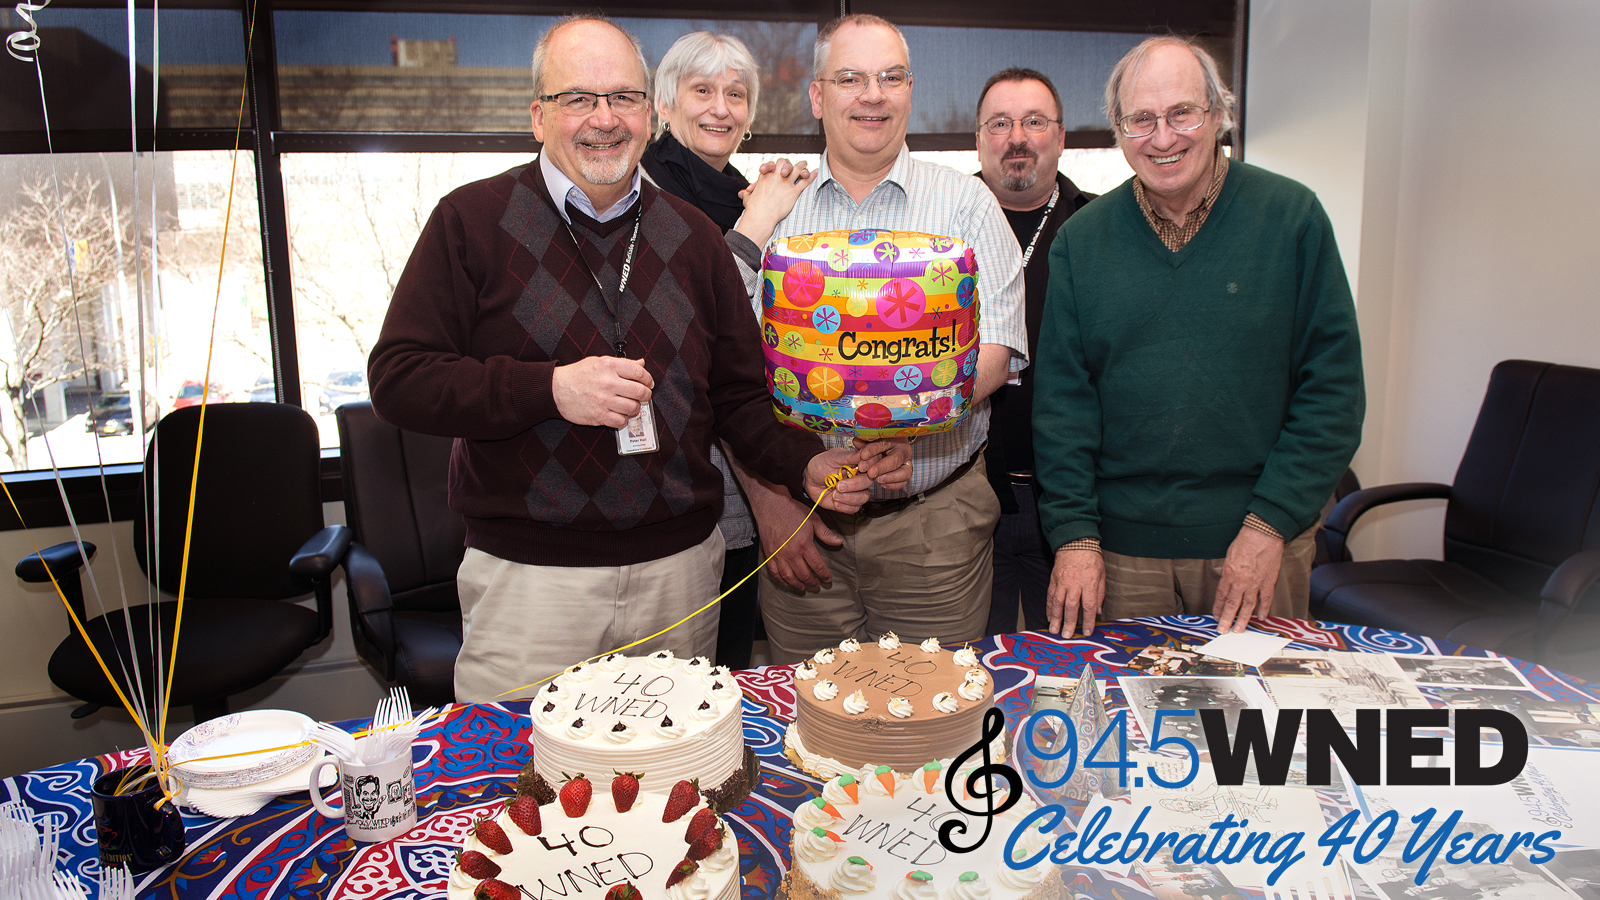 Celebrating 40 years of Classical 94.5 WNED